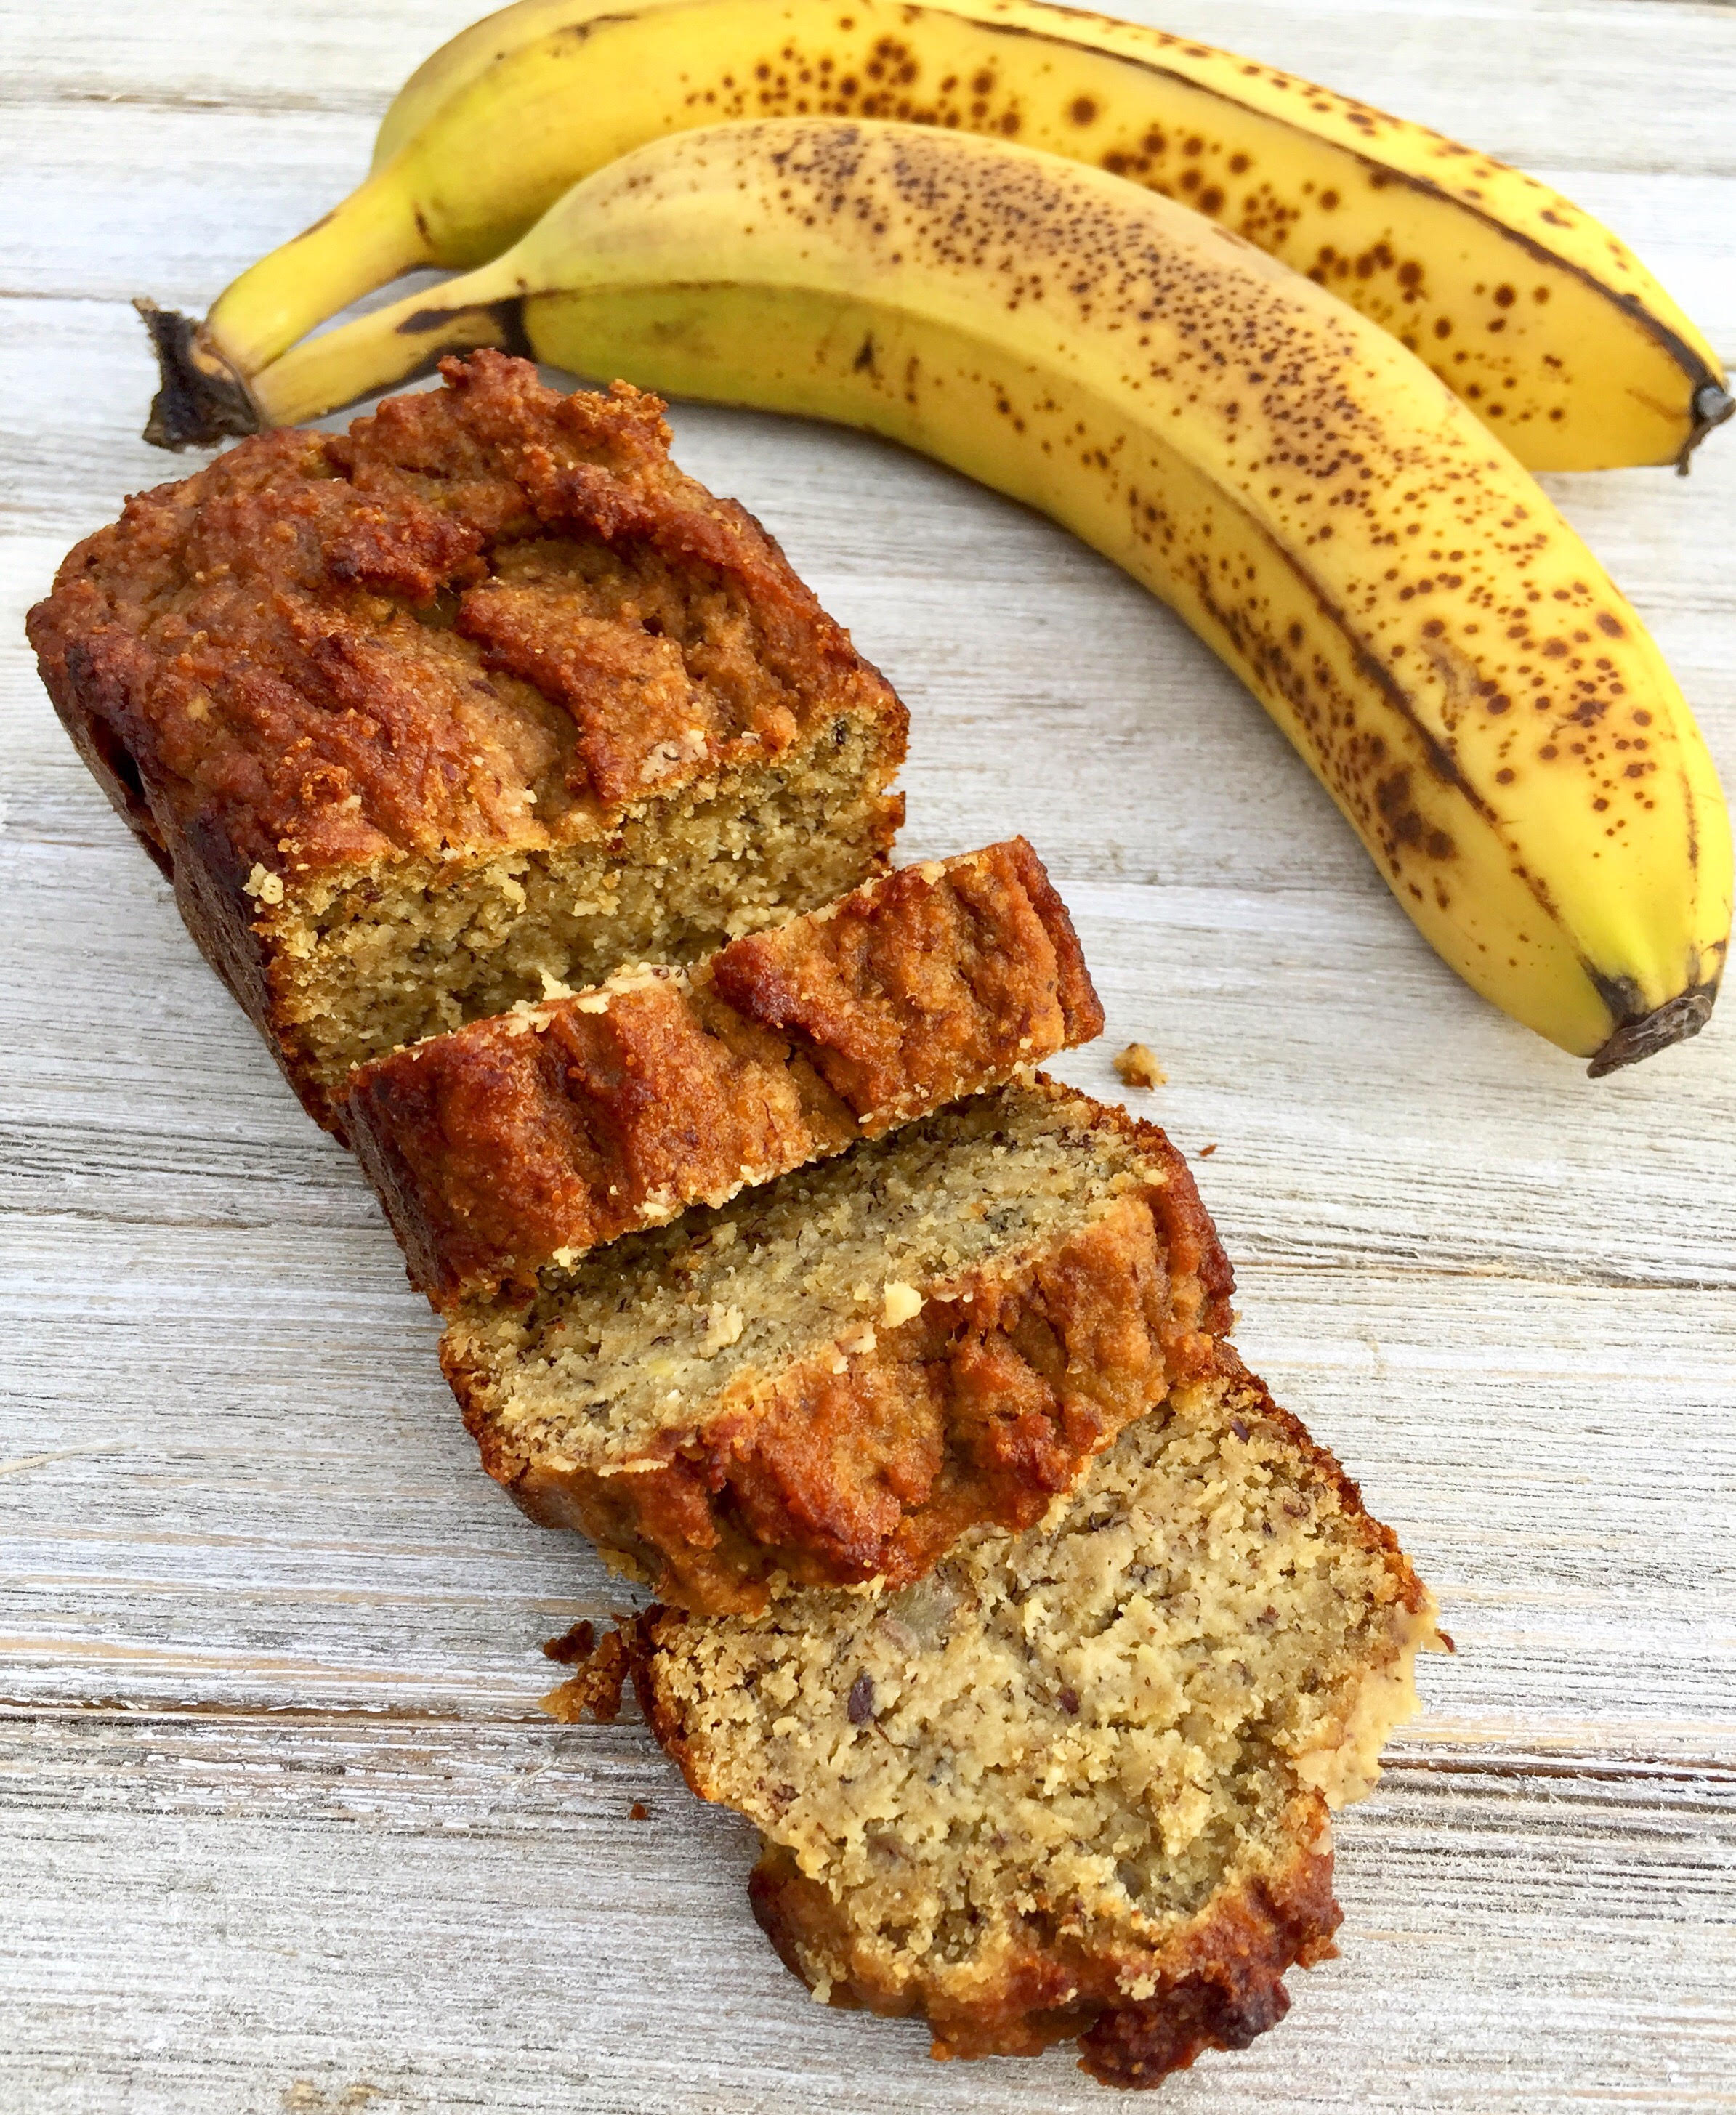 Why choose between avocados and bananas, when you can have both in this Avocado Banana Bread?! This bread is dense, super moist, and loaded with flavor. Enjoy(: